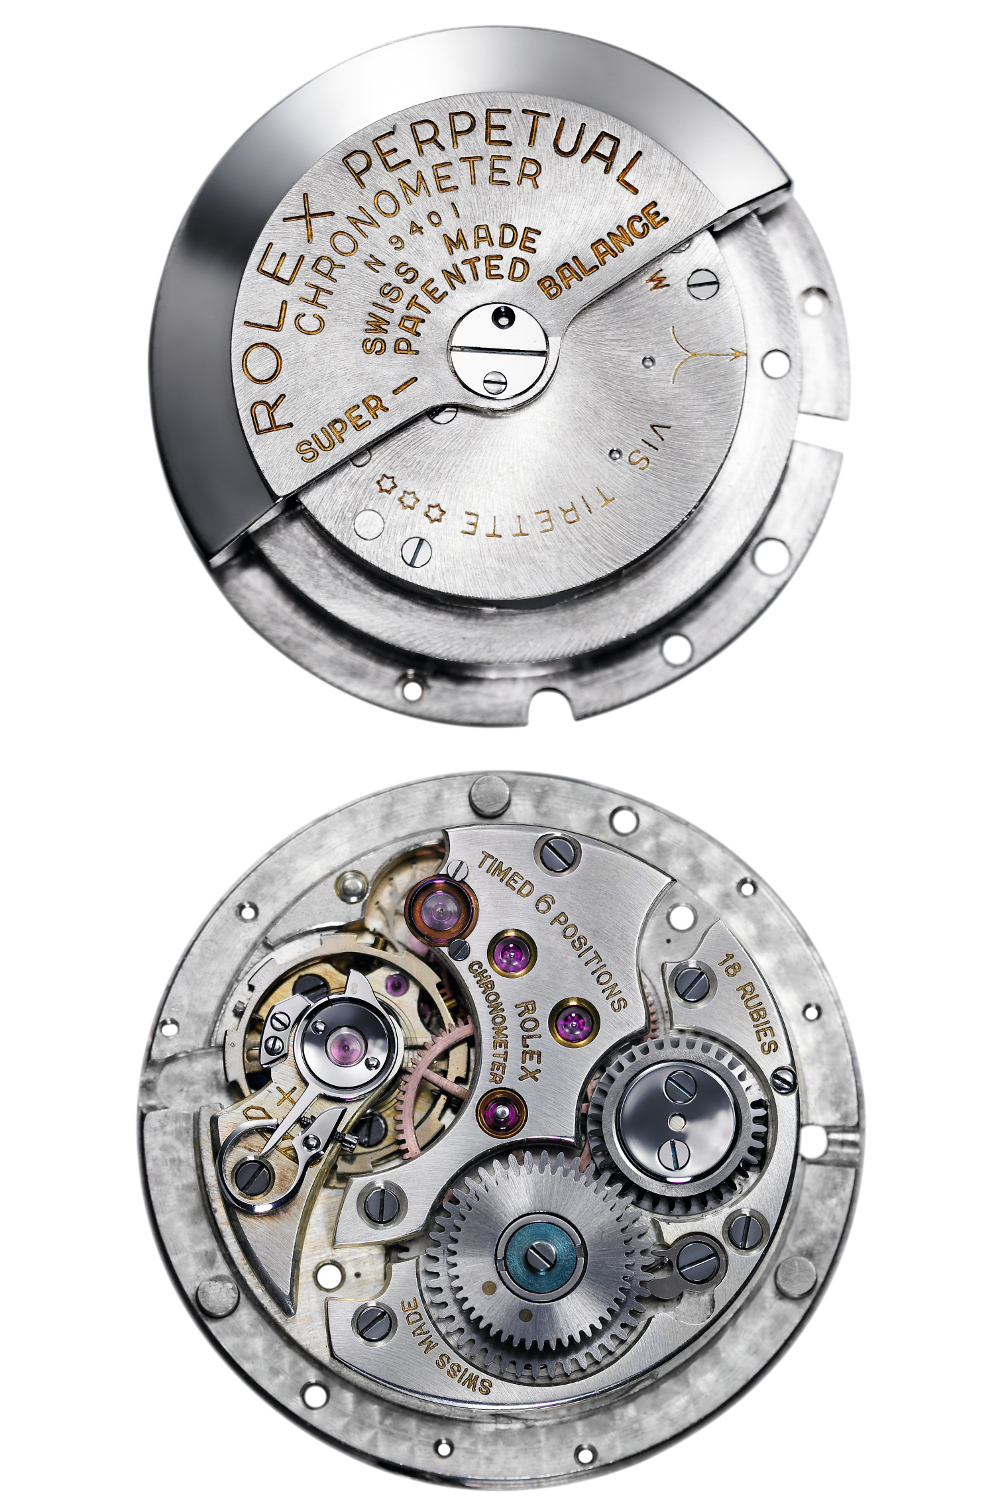 The first Rolex Perpetual movement. Photo courtesy of Rolex.